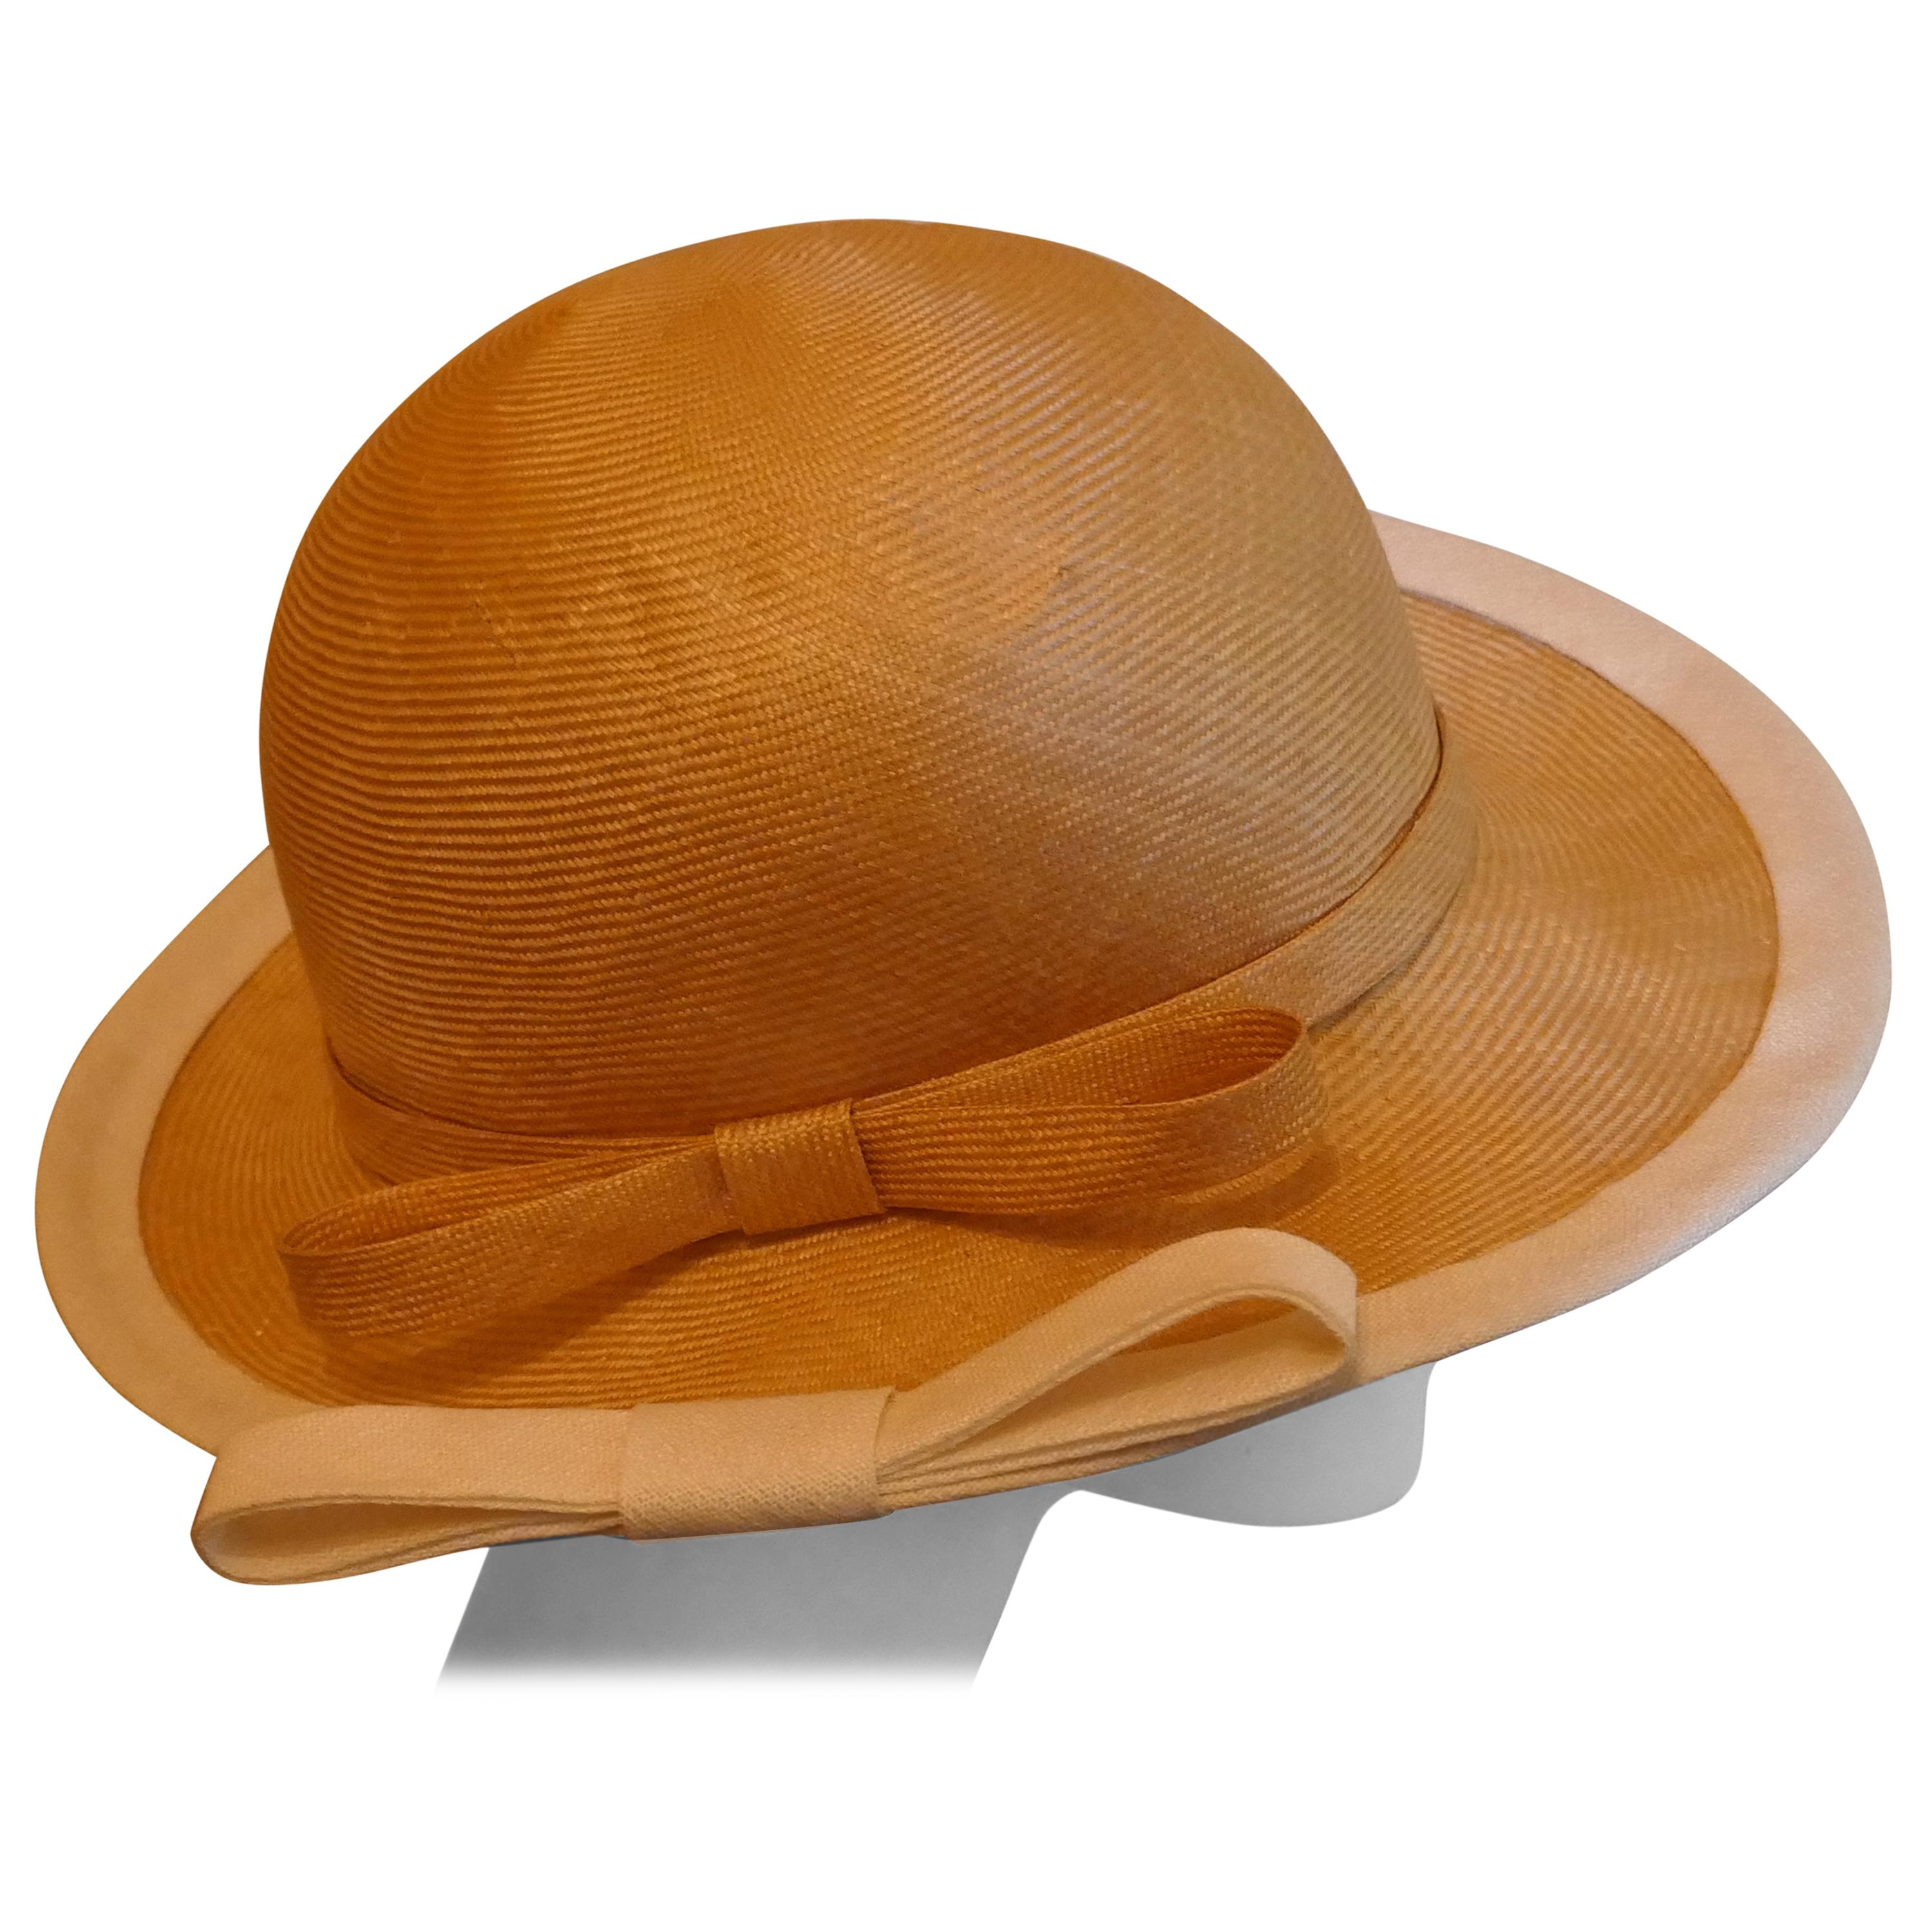 Original 1960s Designer Panama Style Hat, by Edna Wallace